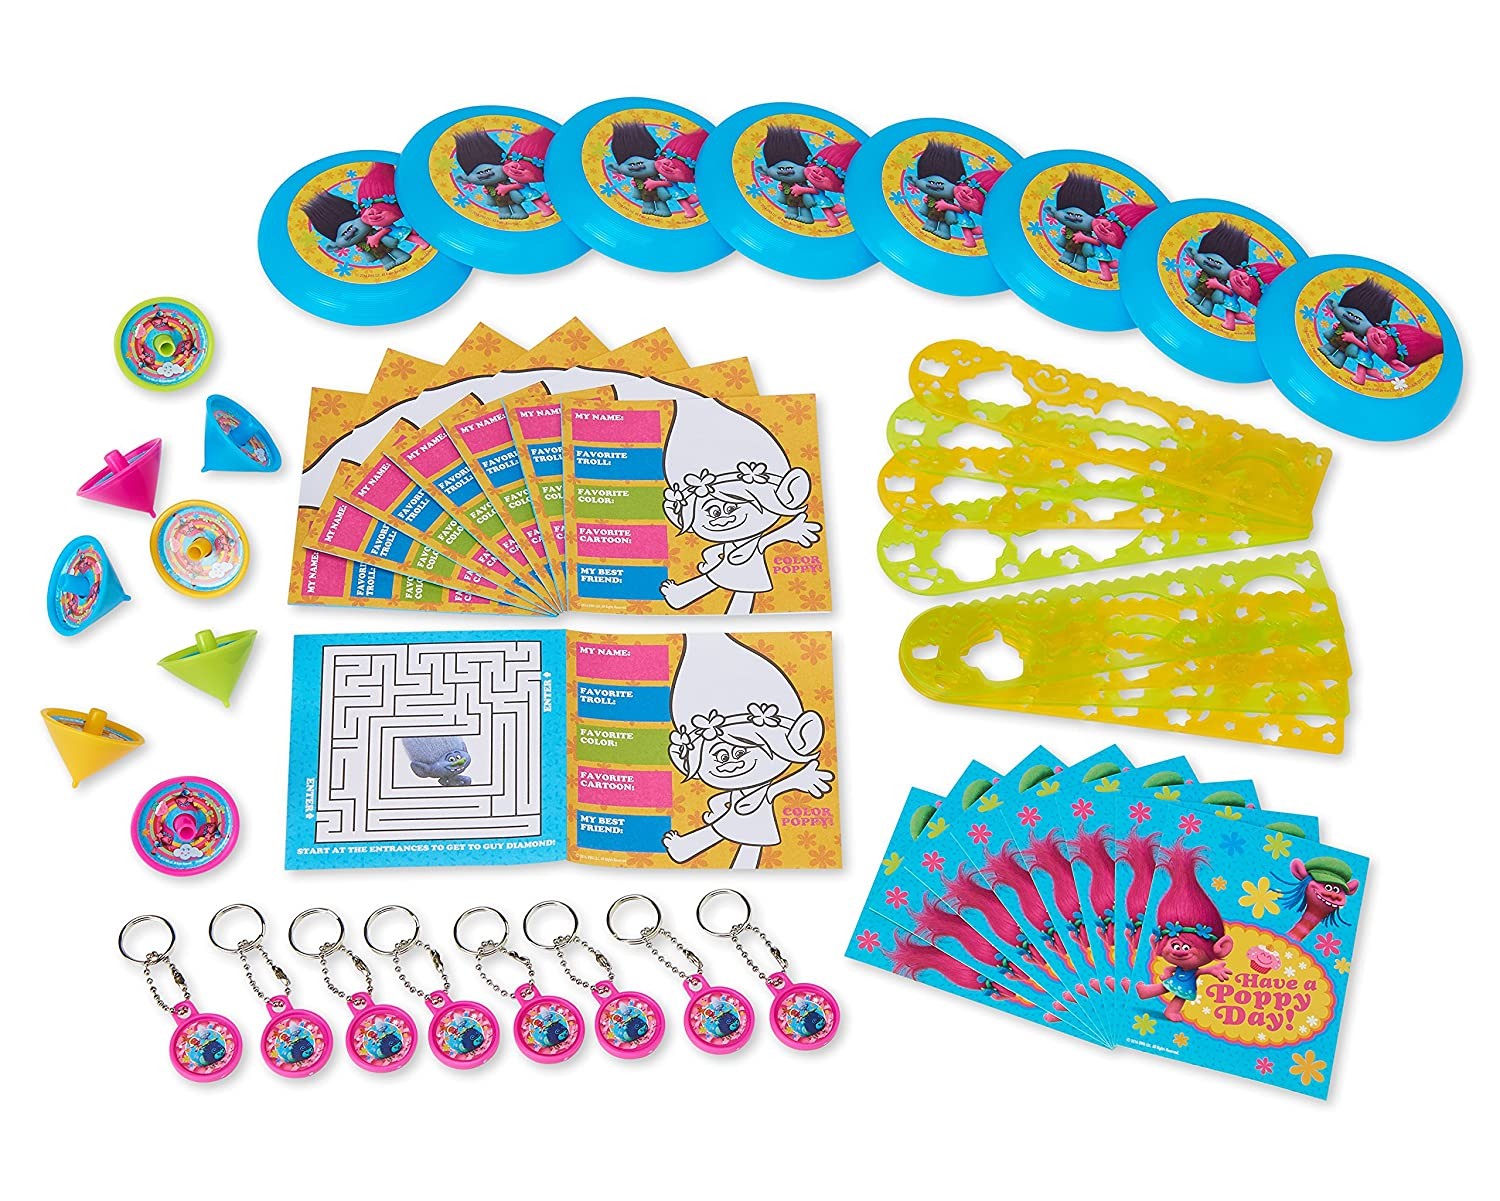 Amazon American Greetings Trolls Party Favor Value Pack Toys